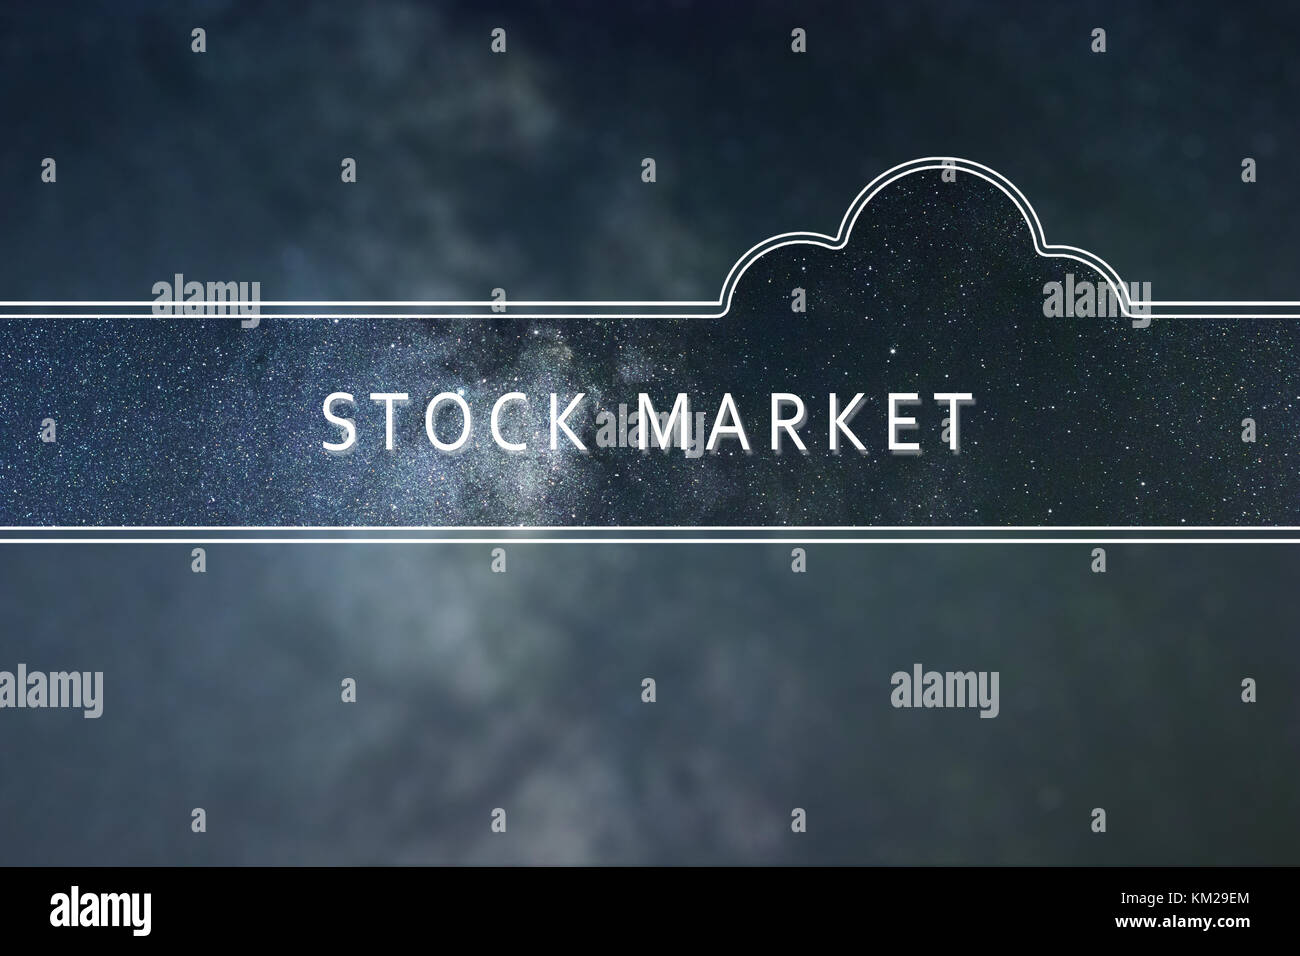 STOCK MARKET word cloud Concept. Space background. - Stock Image